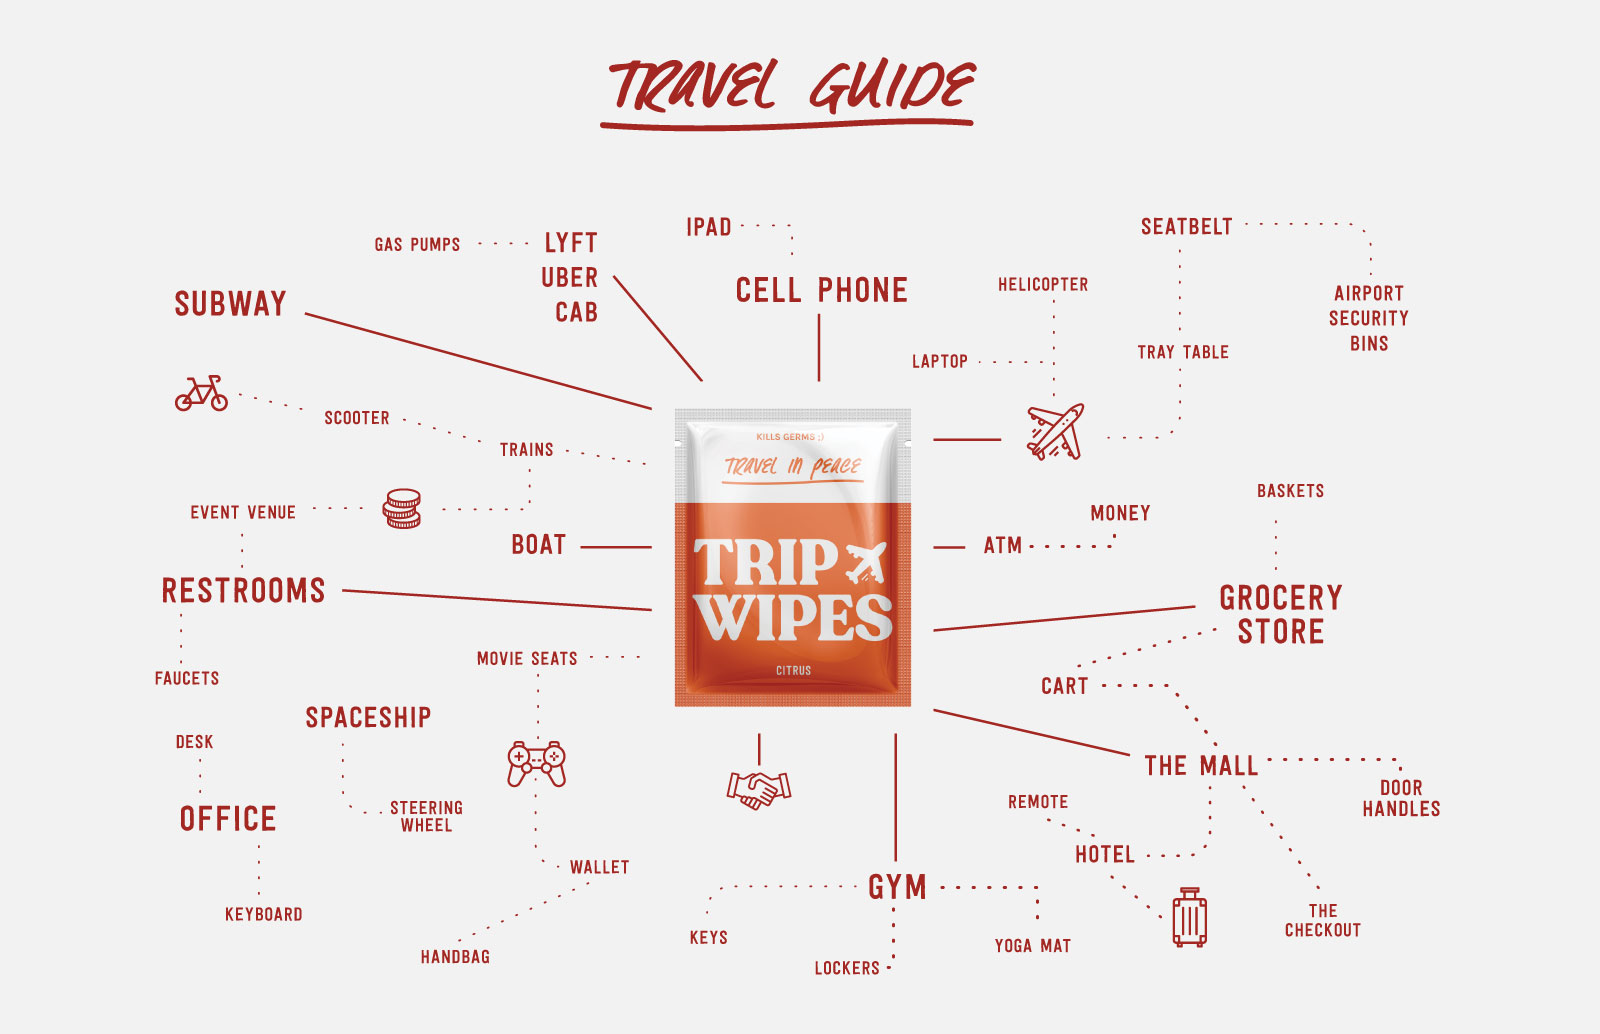 Travel-Guide2.jpg